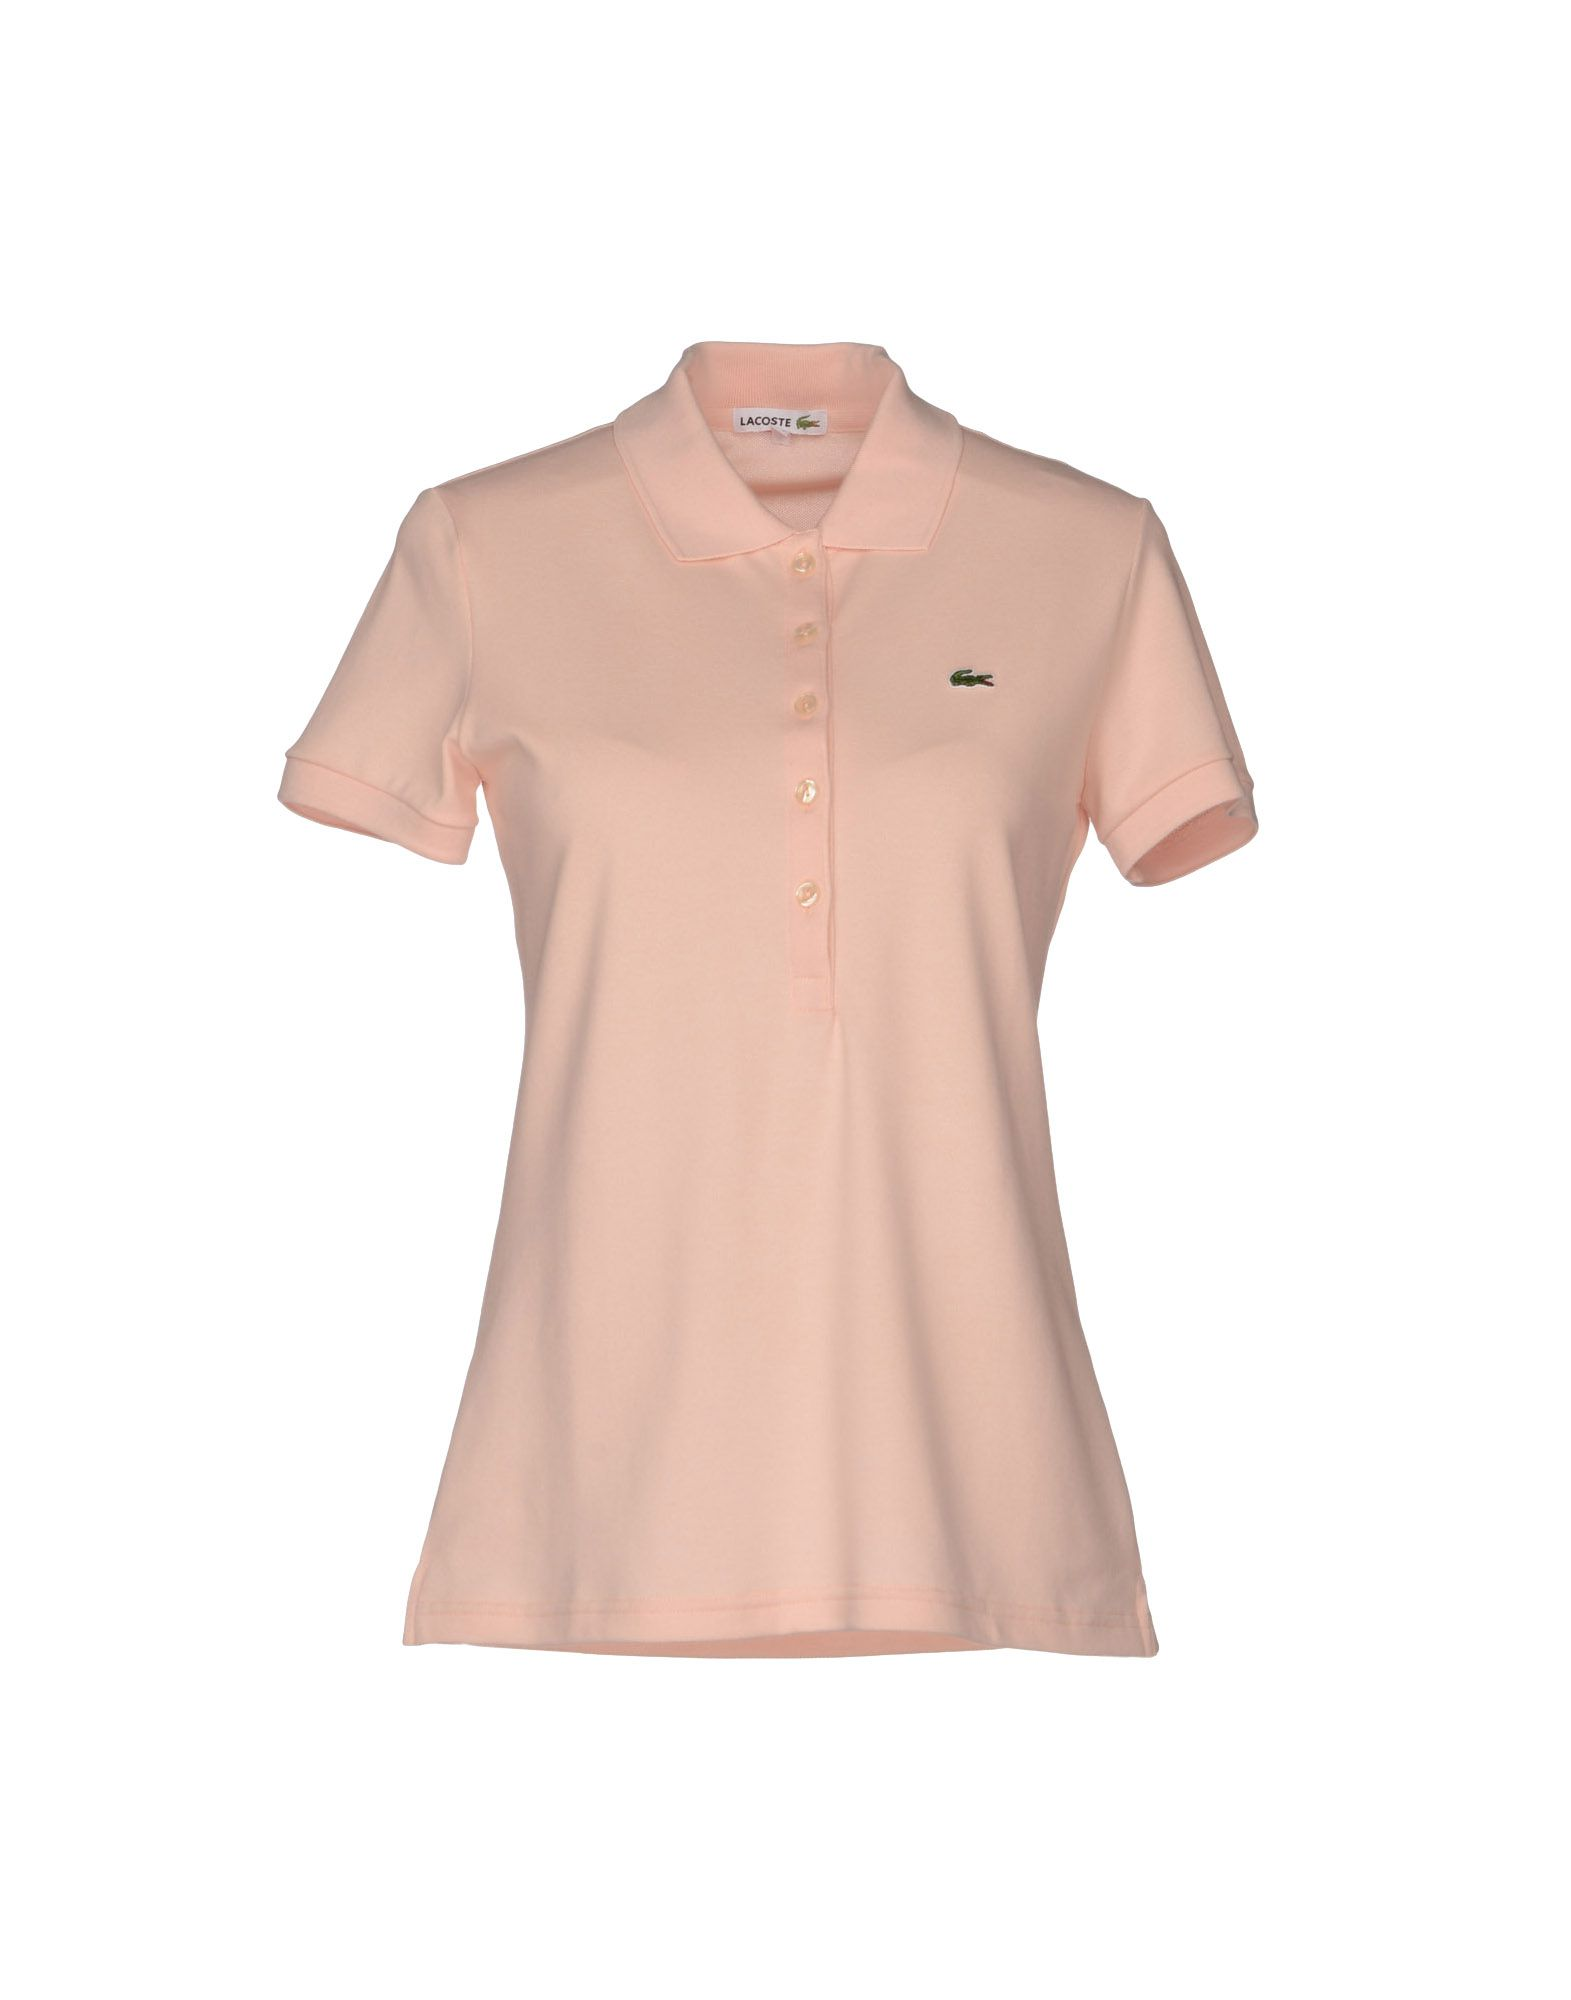 Lacoste Polo Shirts in Pink (Light pink)